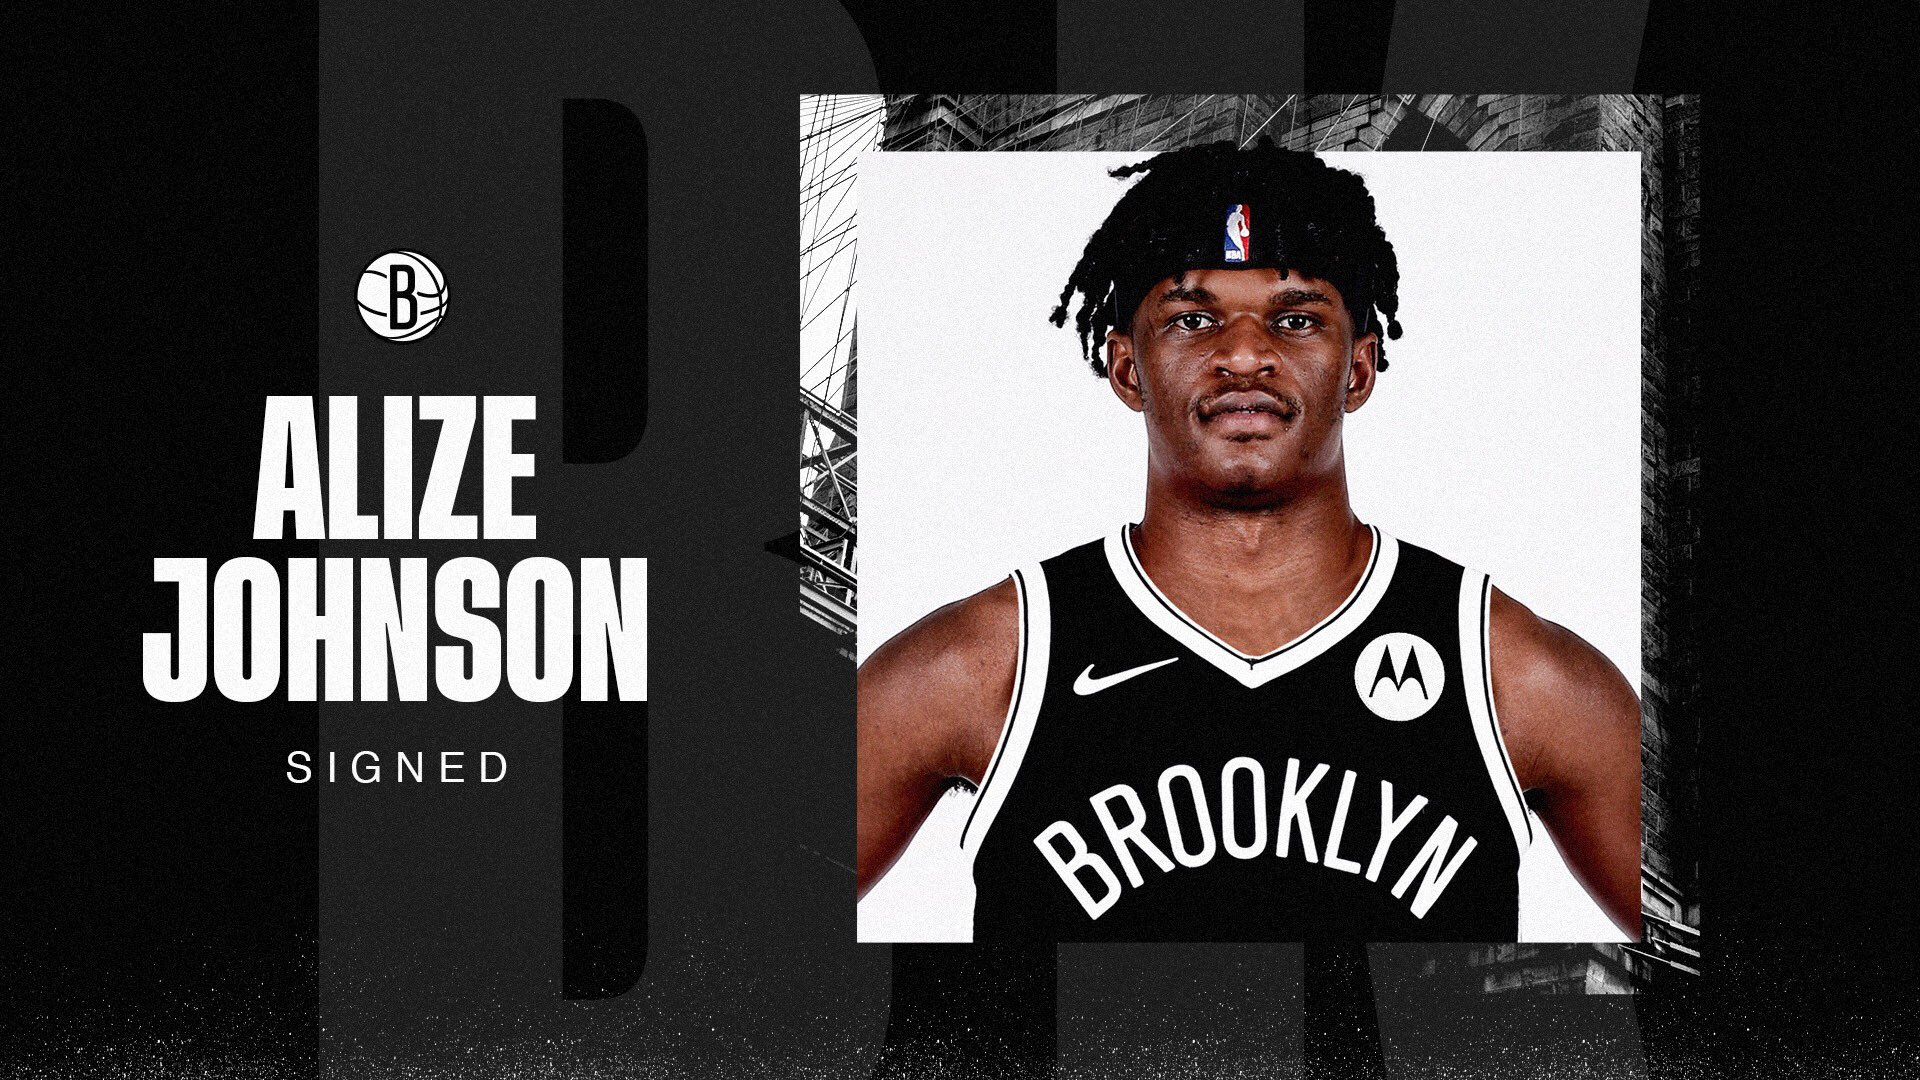 Alize Johnson